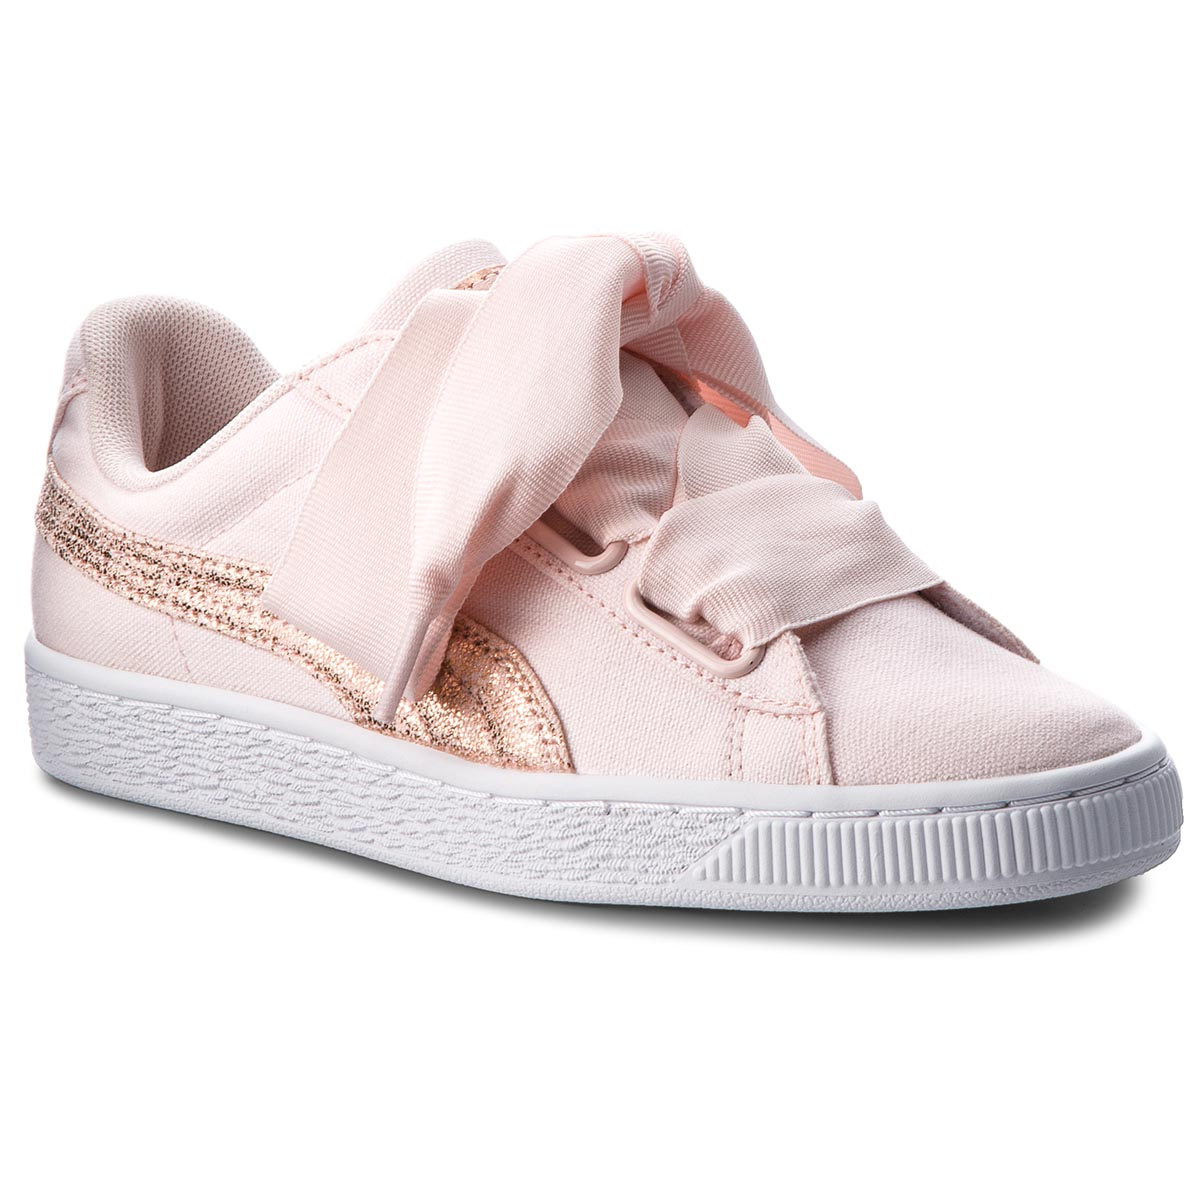 Sneakersy PUMA - Basket Heart Canvas 366495 02 Pearl/Puma White/Rose Gold